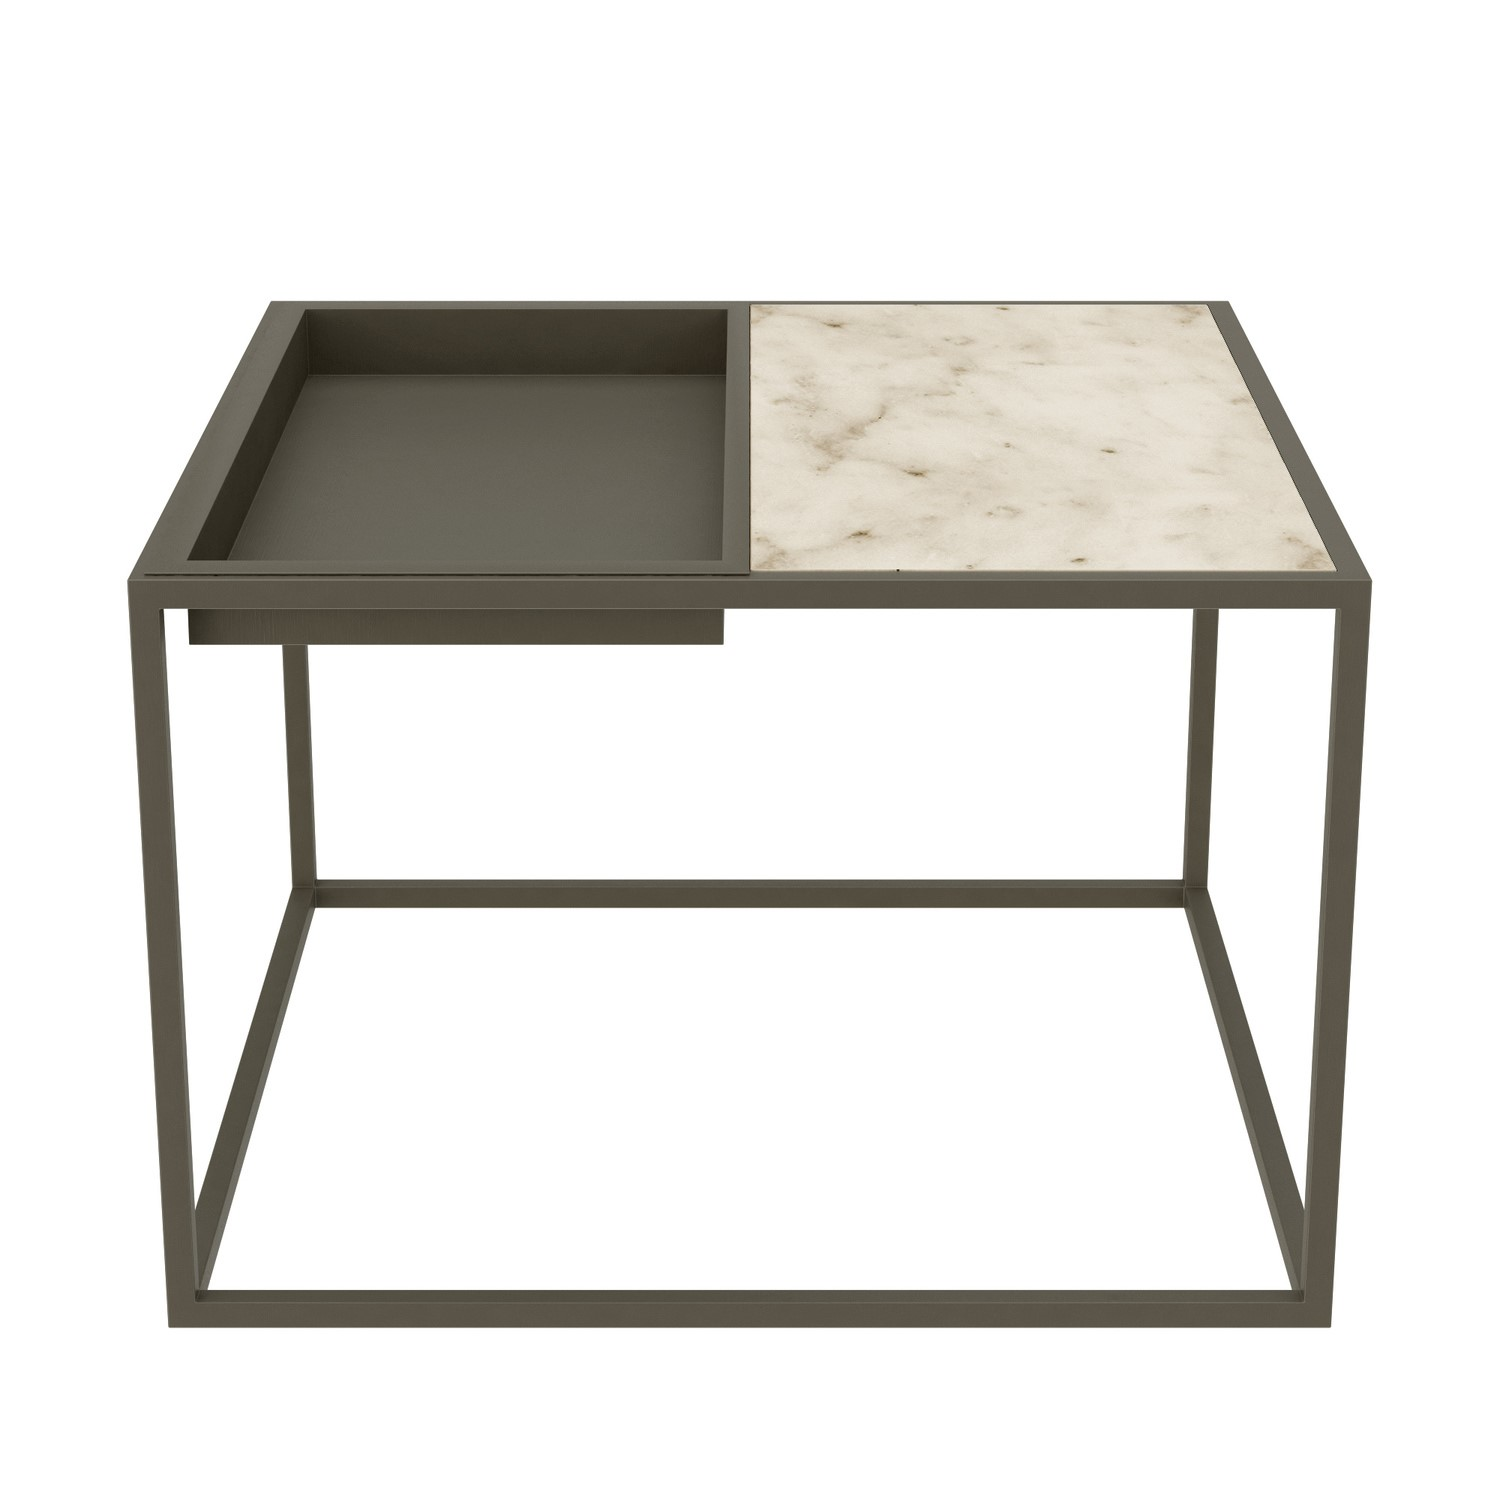 Square Grey Tray Coffee Table With White Marble Top Modern Buyitdirect Ie